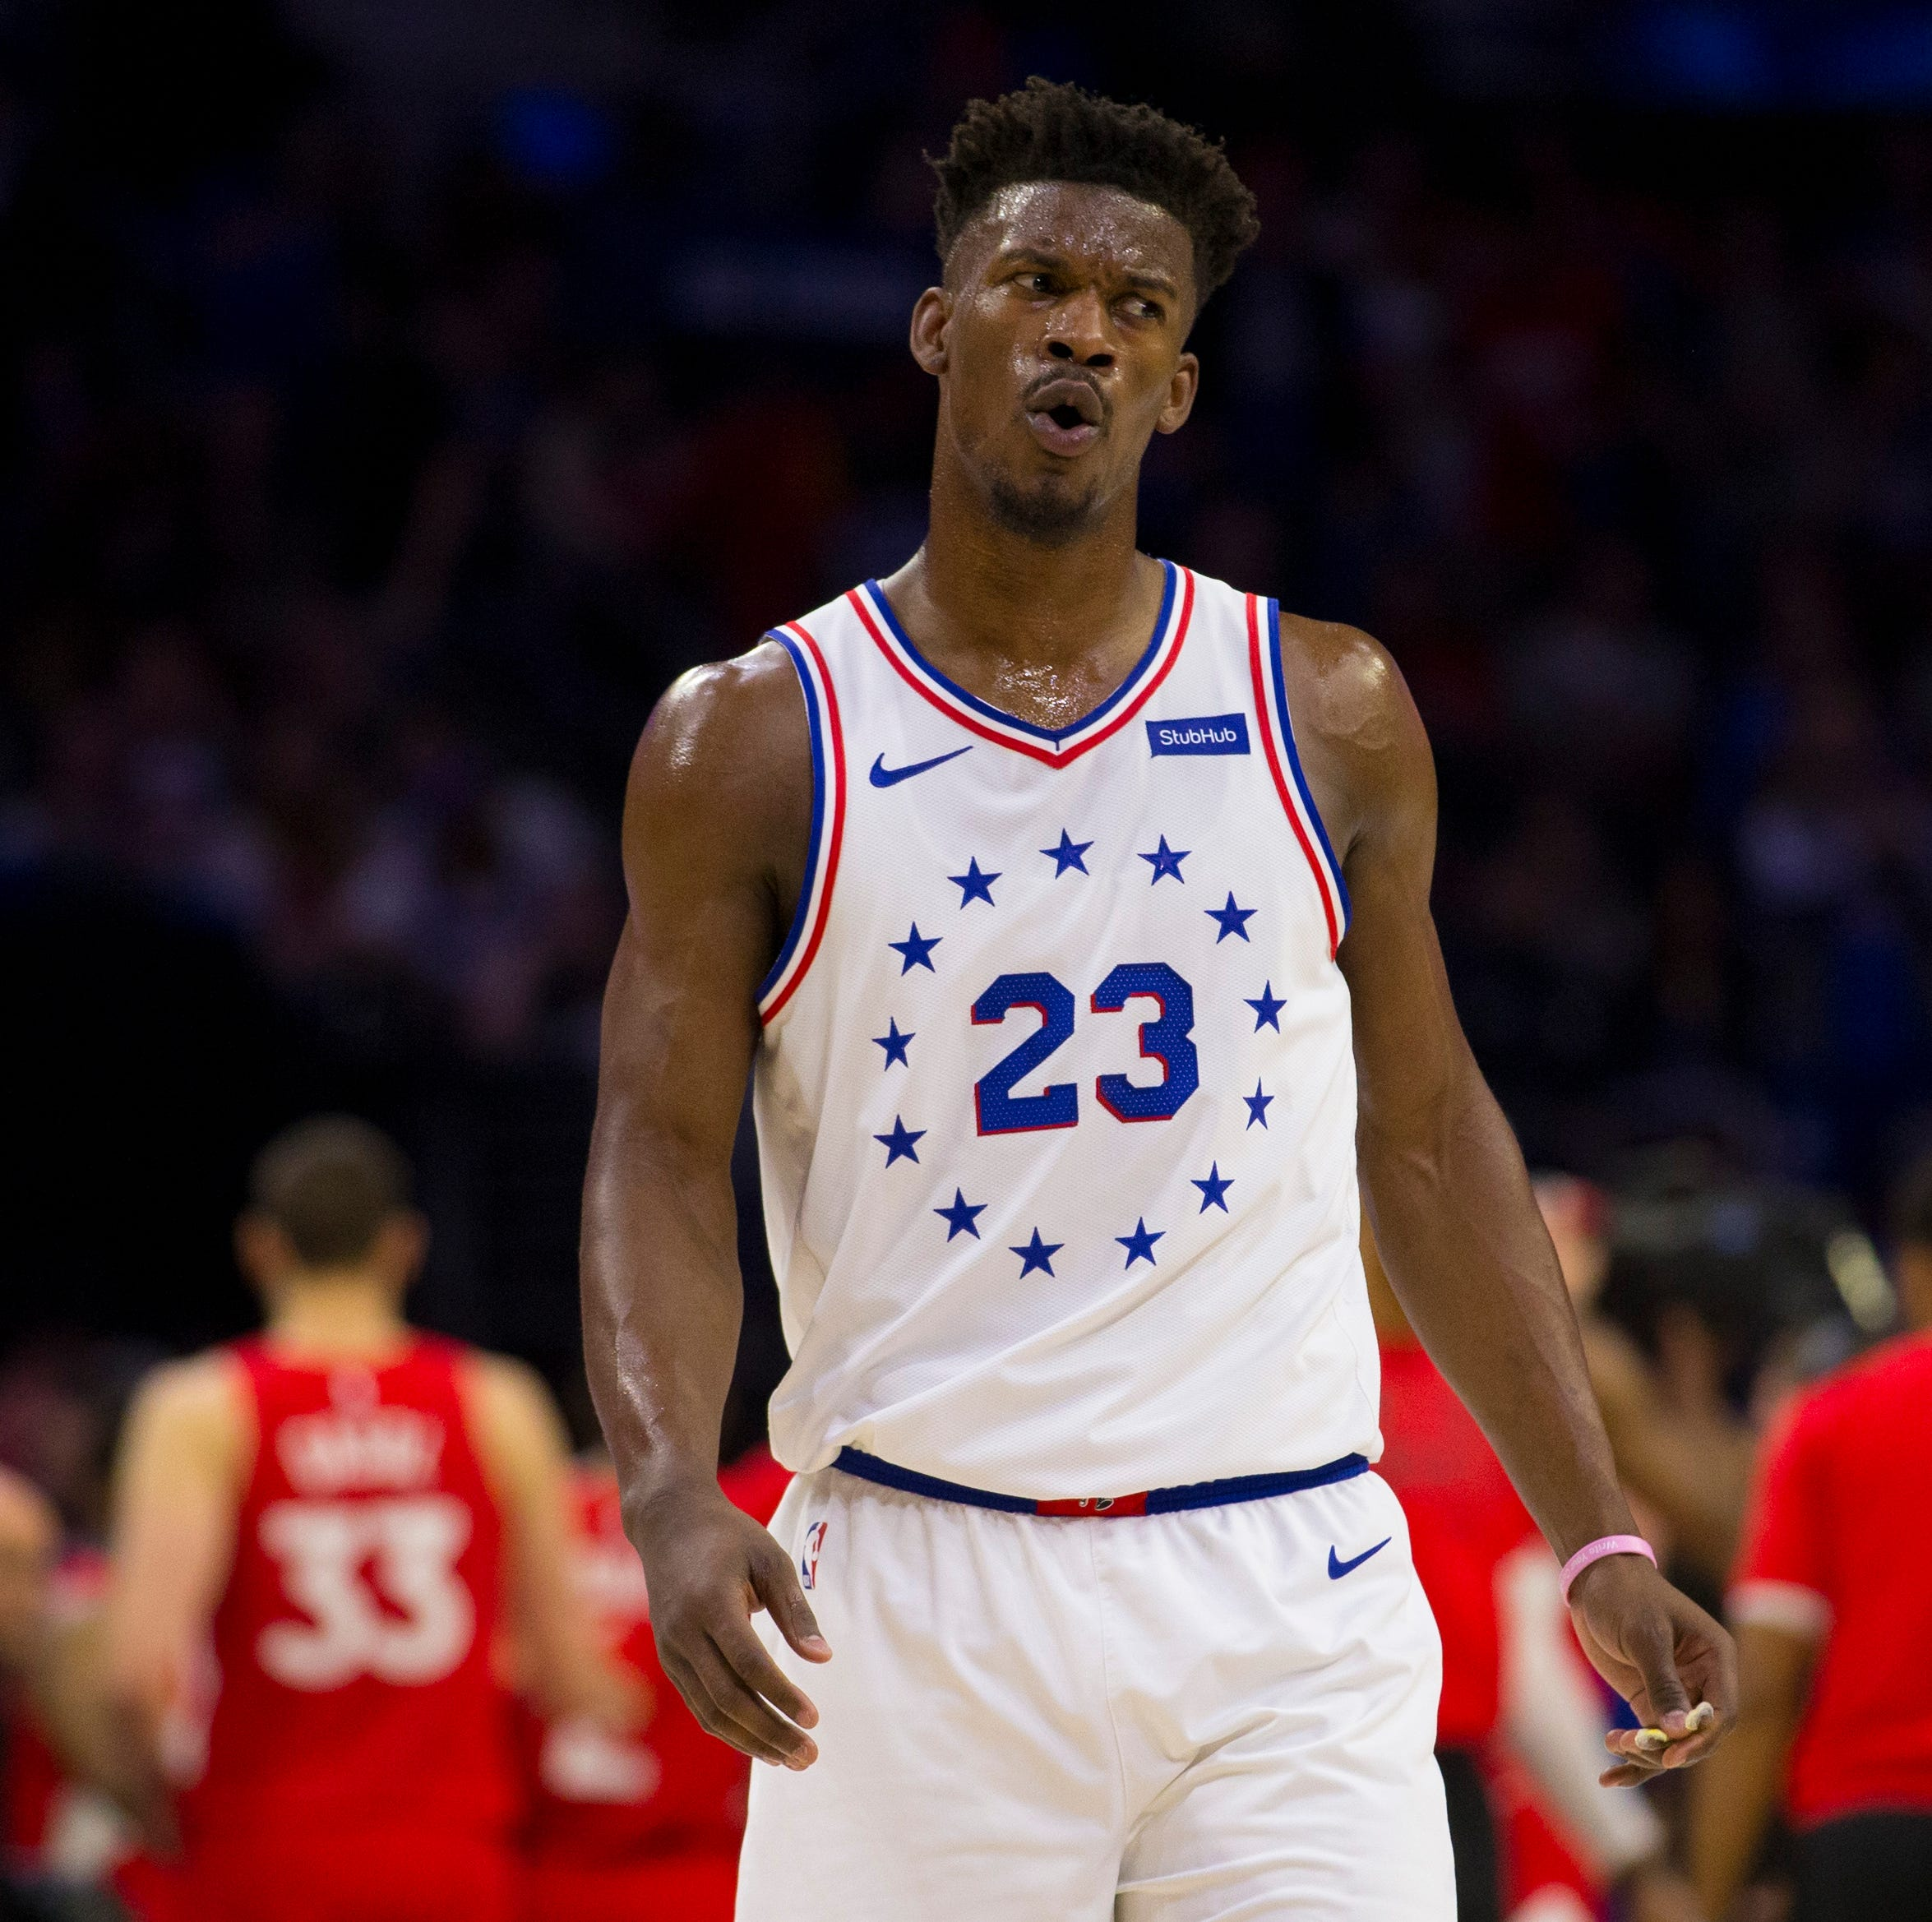 Jimmy Butler can't save Sixers, who fall to Kawhi Leonard, Raptors to even NBA playoff series